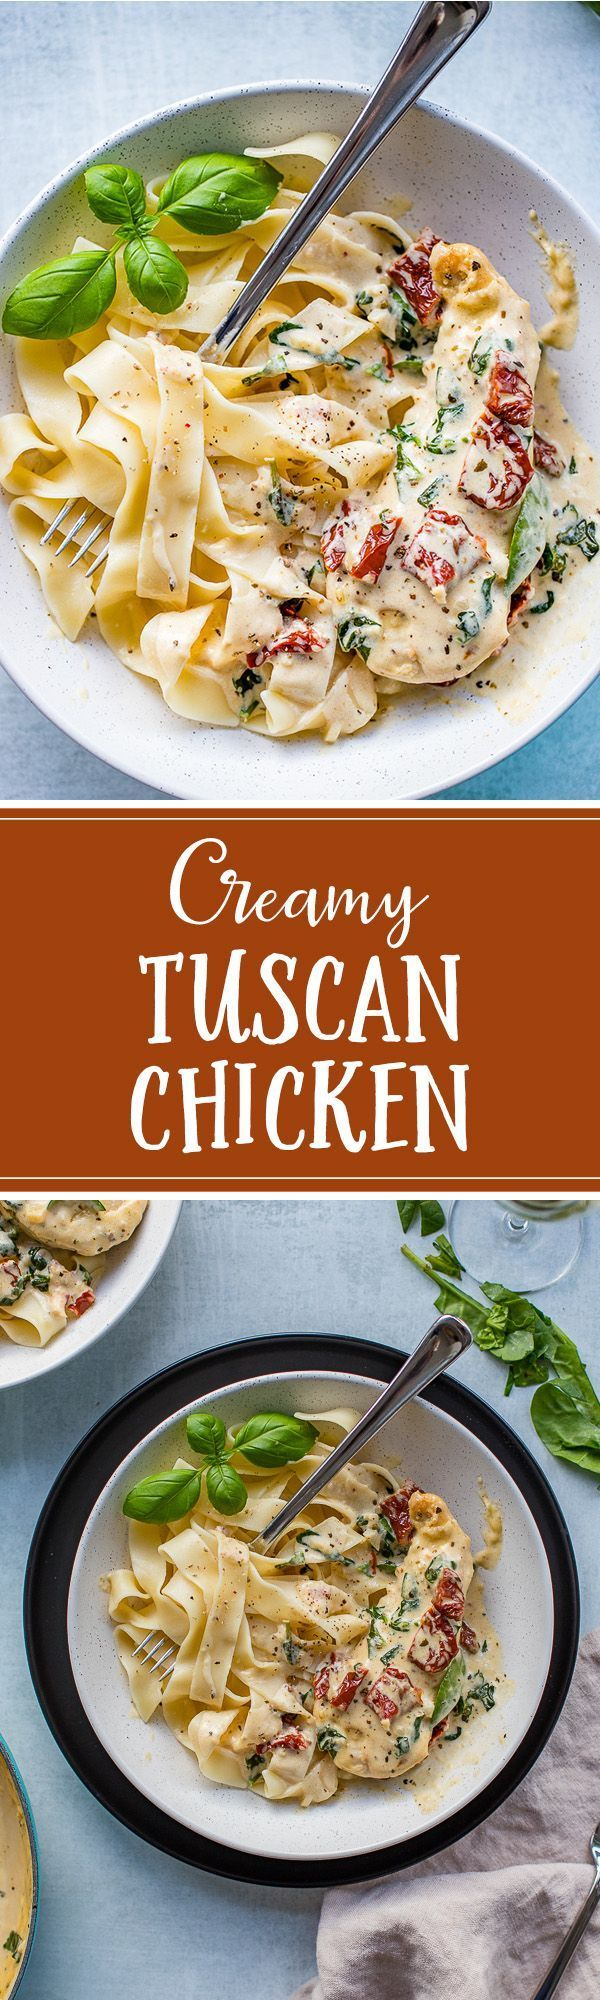 Creamy Tuscan chicken recipe with fresh garlic, spinach, and sun-dried tomatoes is as easy as it is delicious, and as perfect for busy weeknights as it is for entertaining.